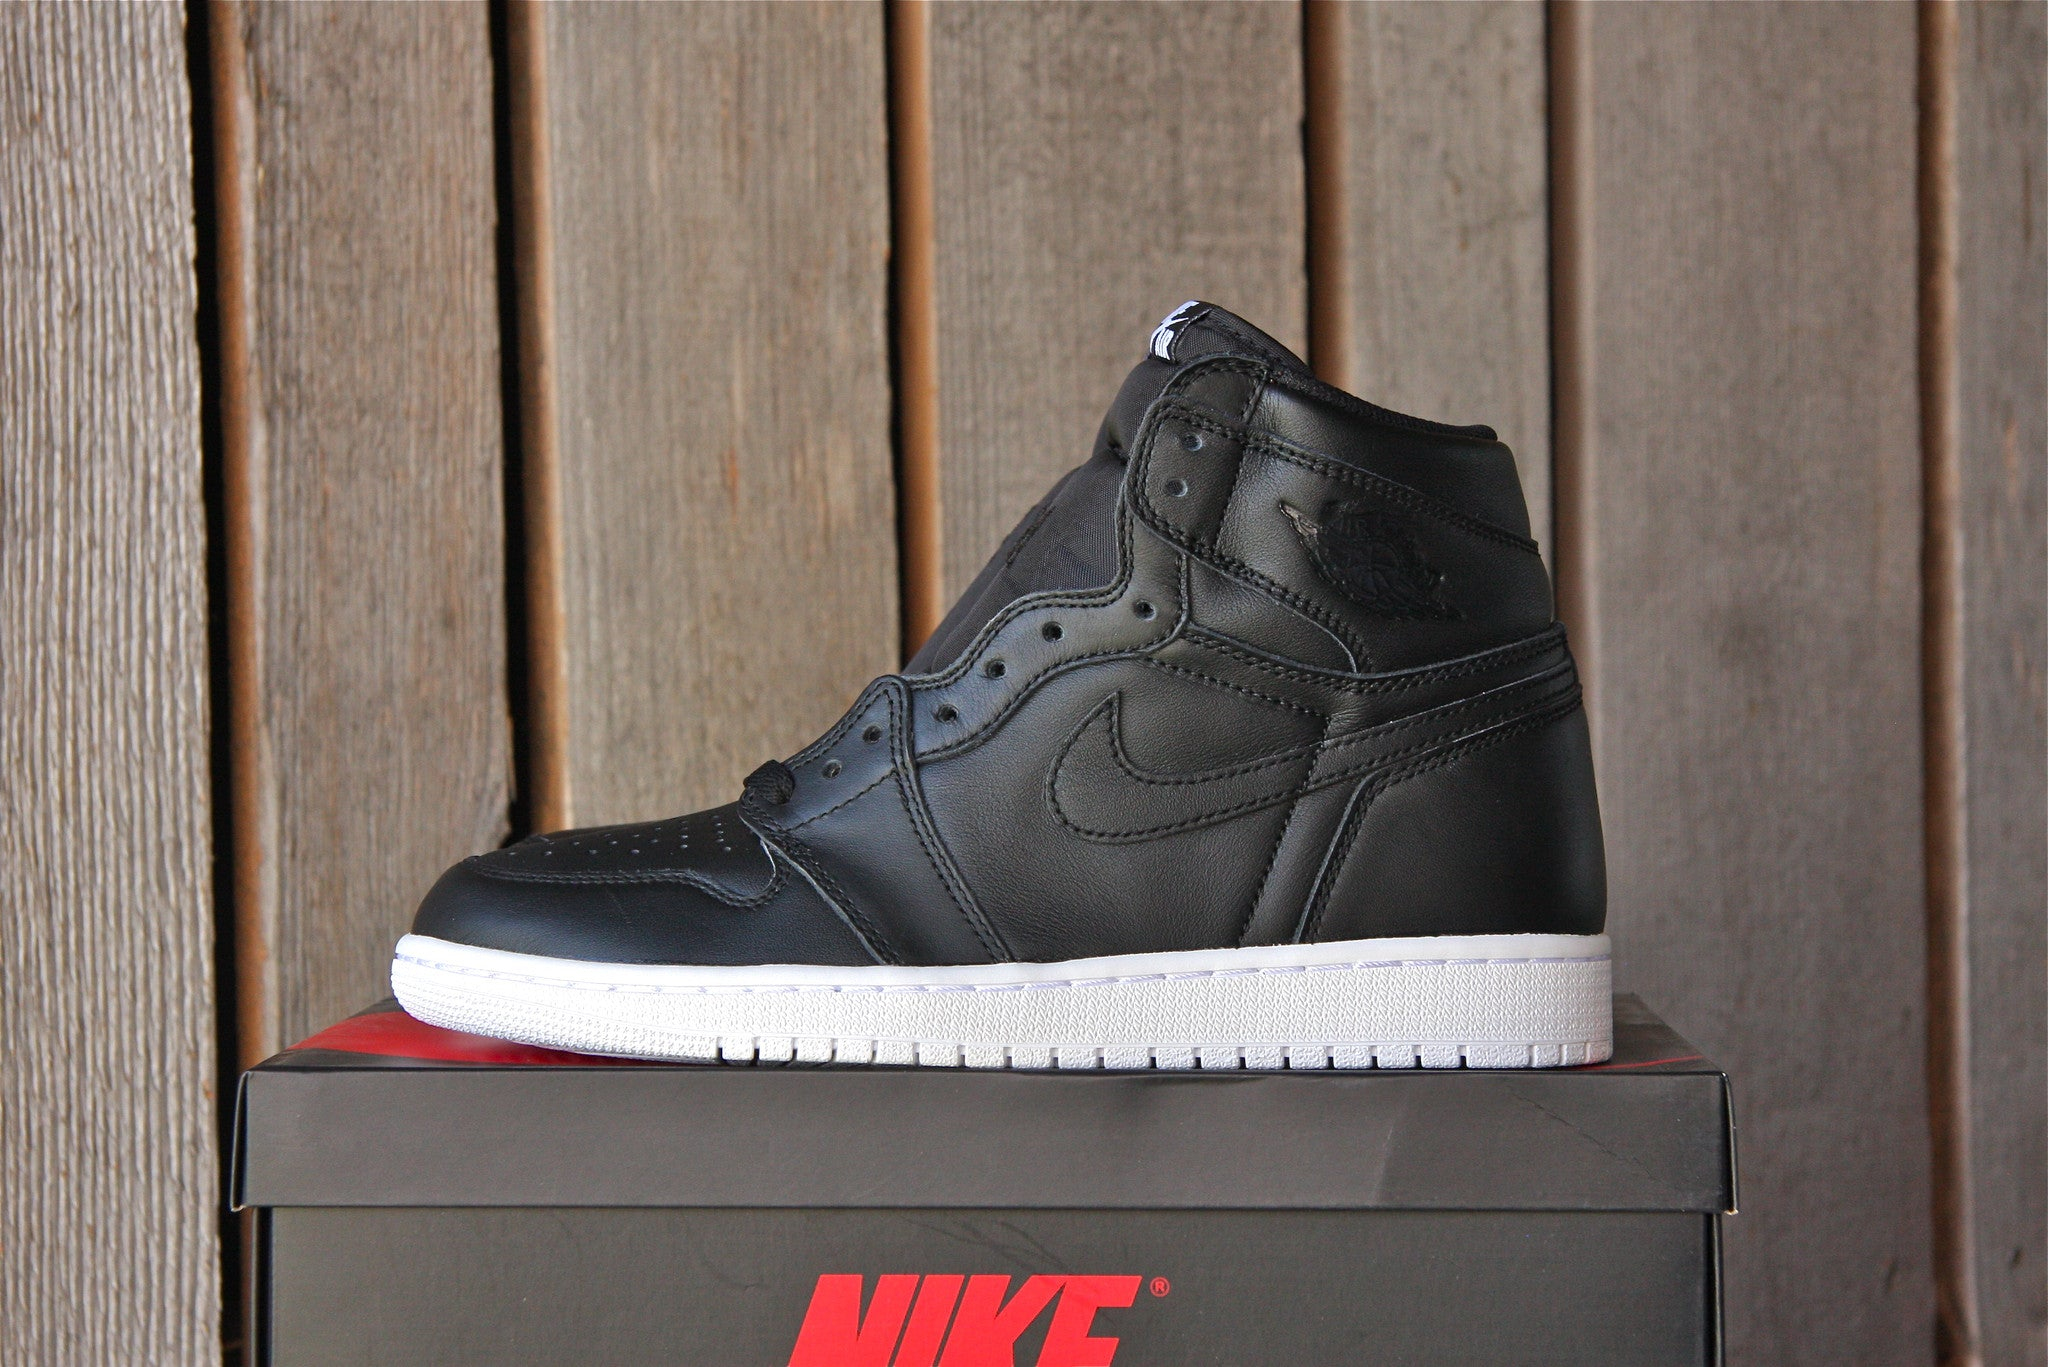 Air Jordan 1 Retro OG High (Cyber Monday)